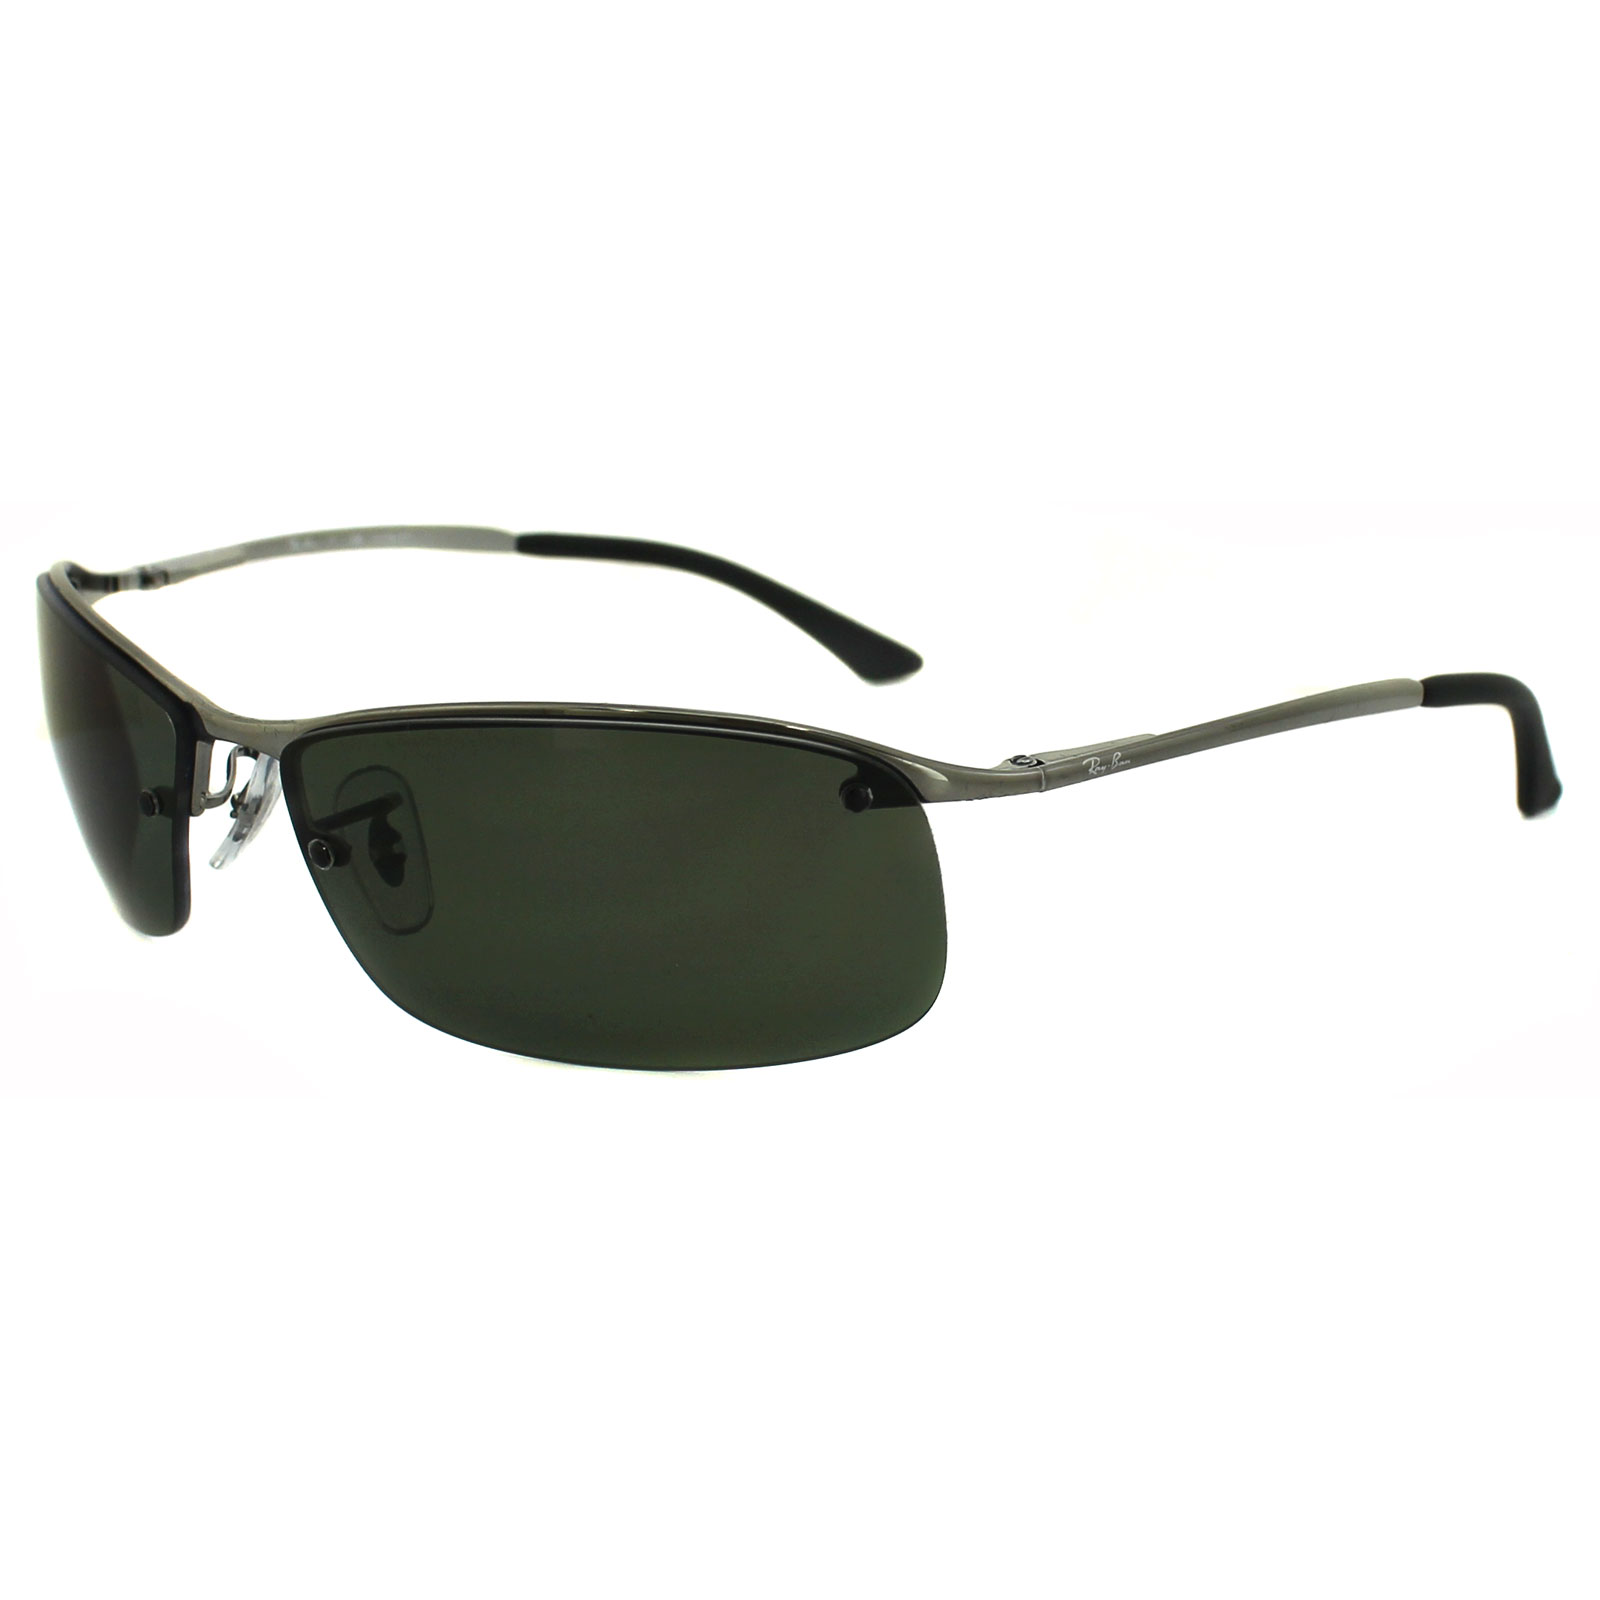 Charmant Sentinel Rayban Sunglasses Top Bar 3183 Gunmetal Polarized Green 004/9A